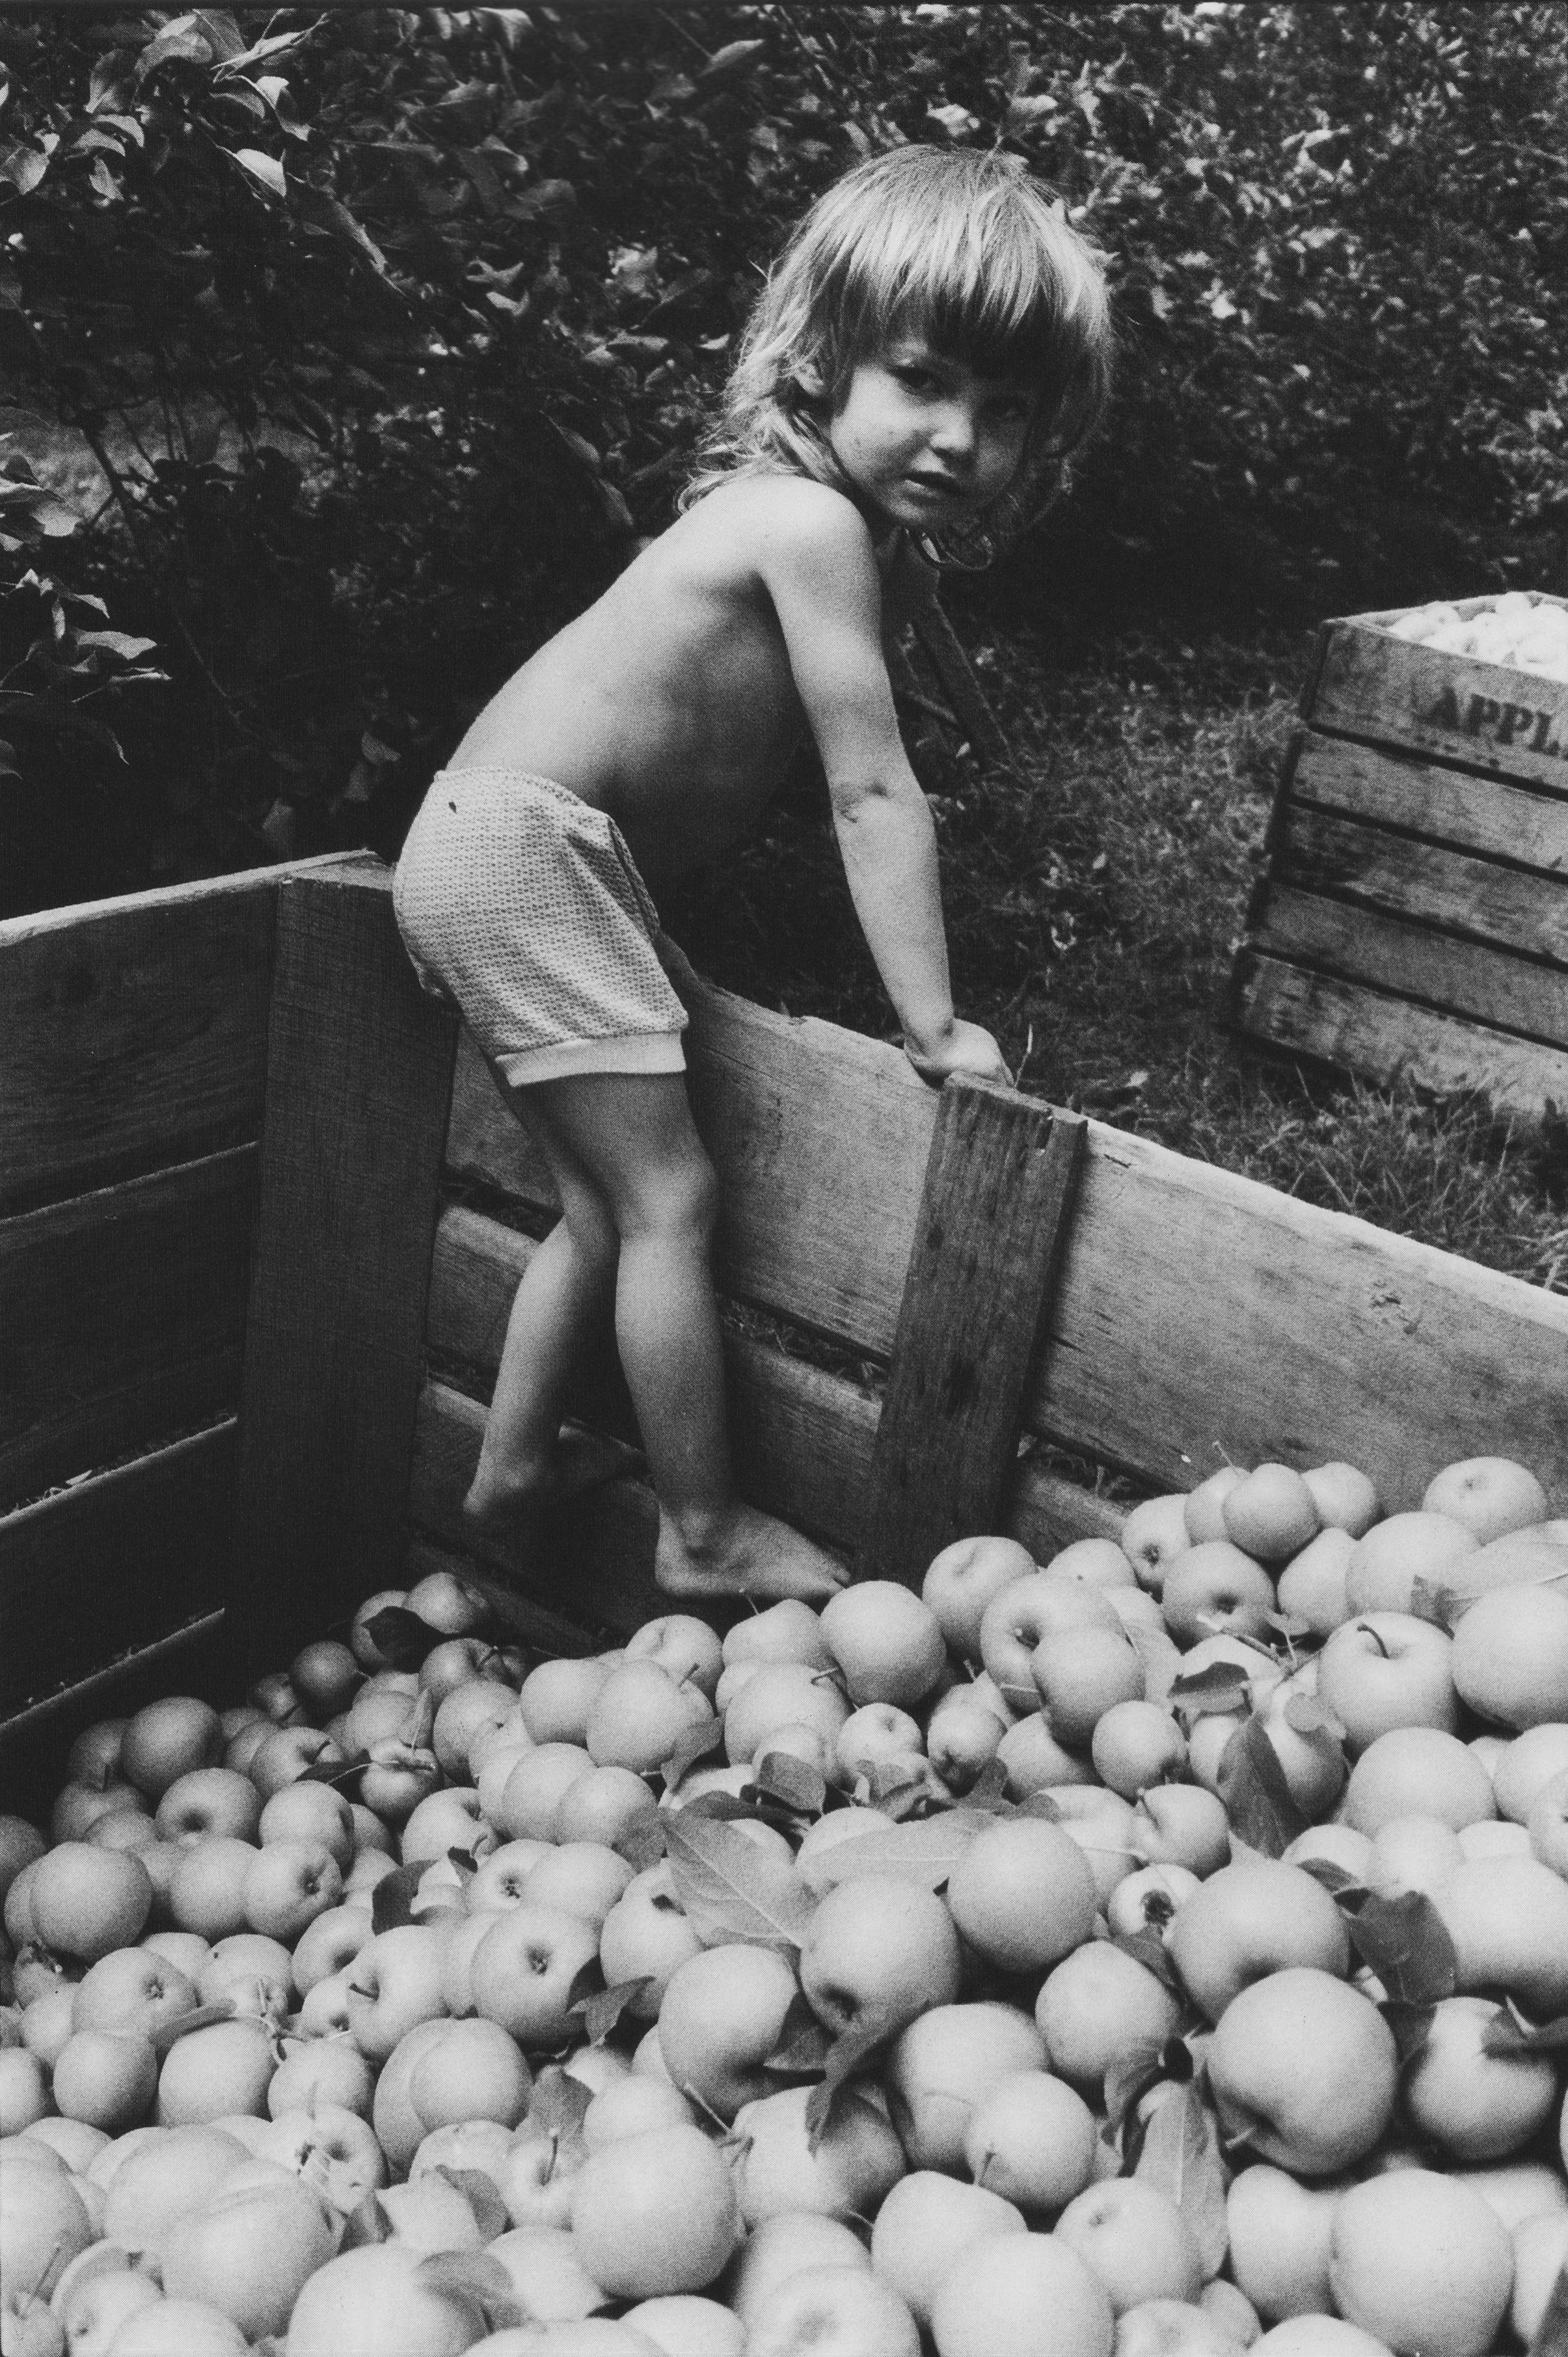 Tina climbing in apple bin to remove leaves and twigs from apples while parents pick nearby, Dana, NC.